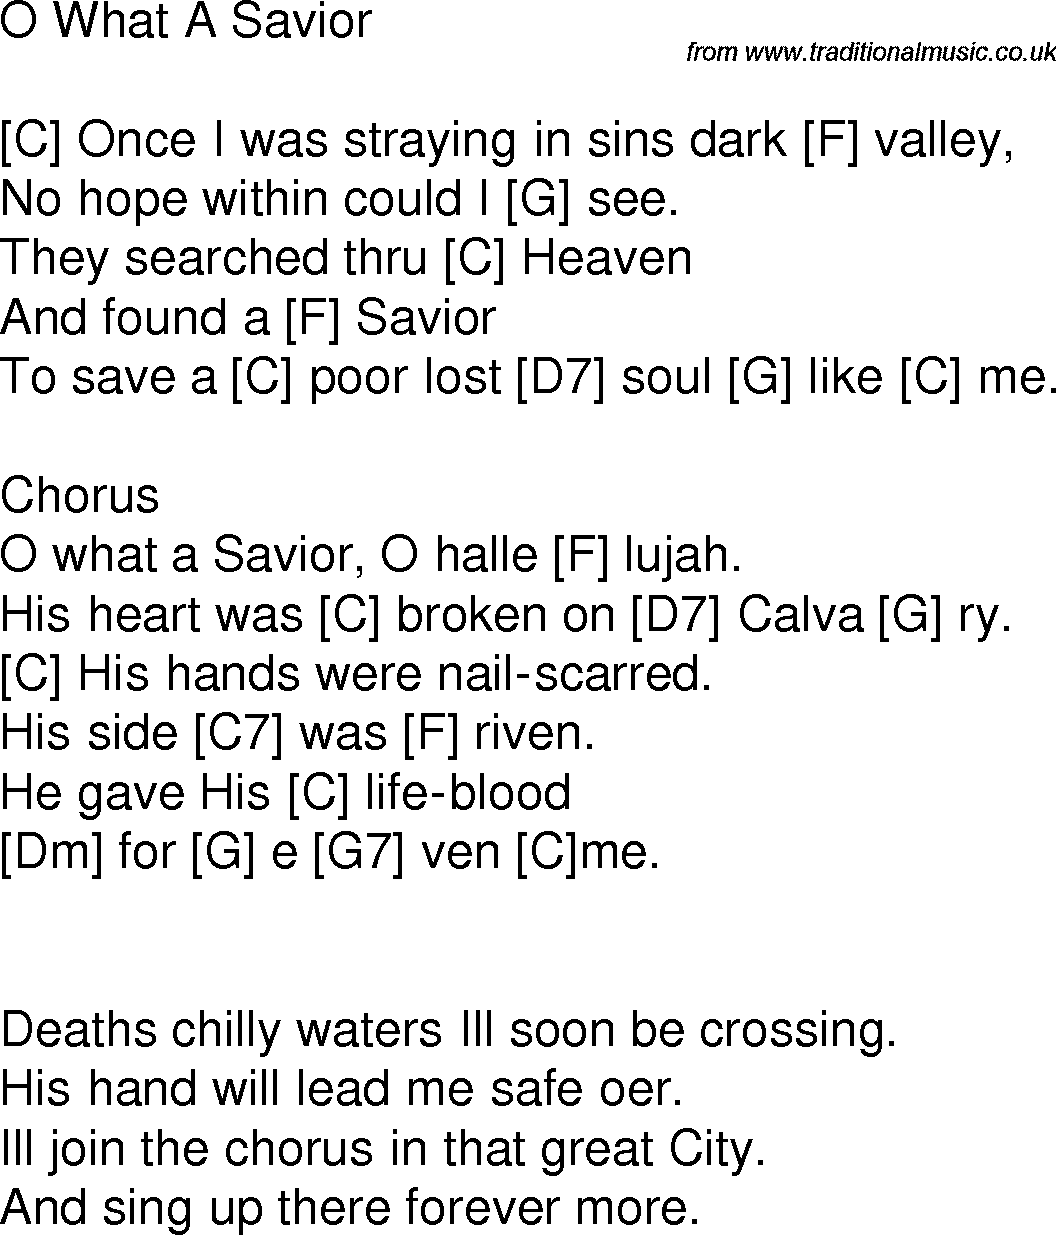 Old Time Song Lyrics With Guitar Chords For O What A Savior C